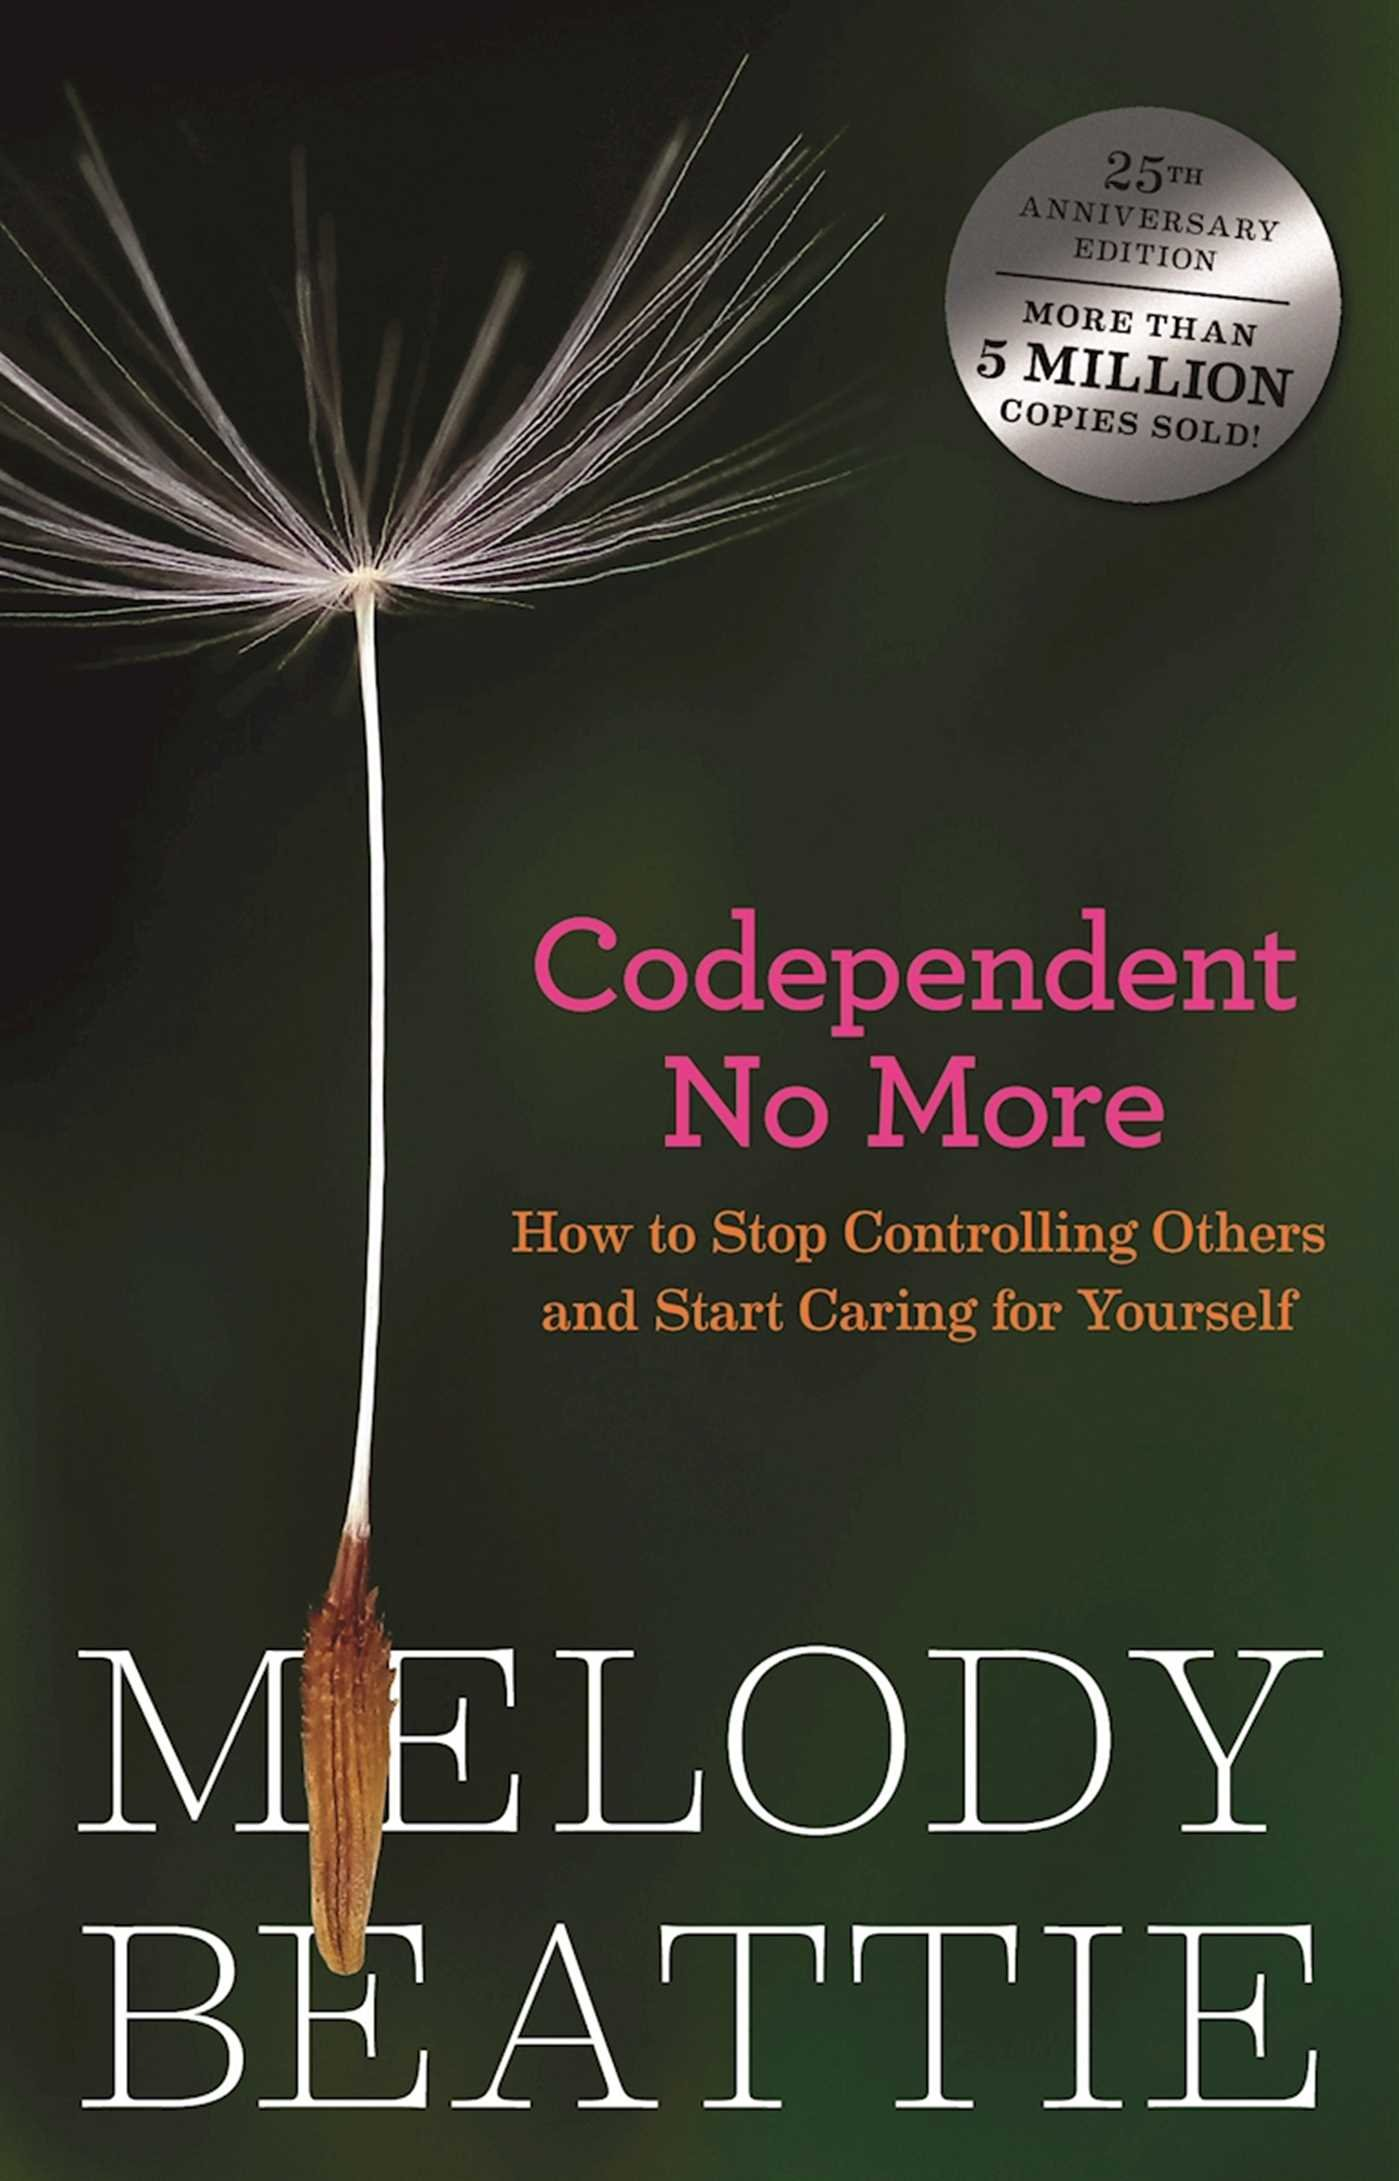 Codependent No More: How to Stop Controlling Others and Start Caring for Yourself WeeklyReviewer